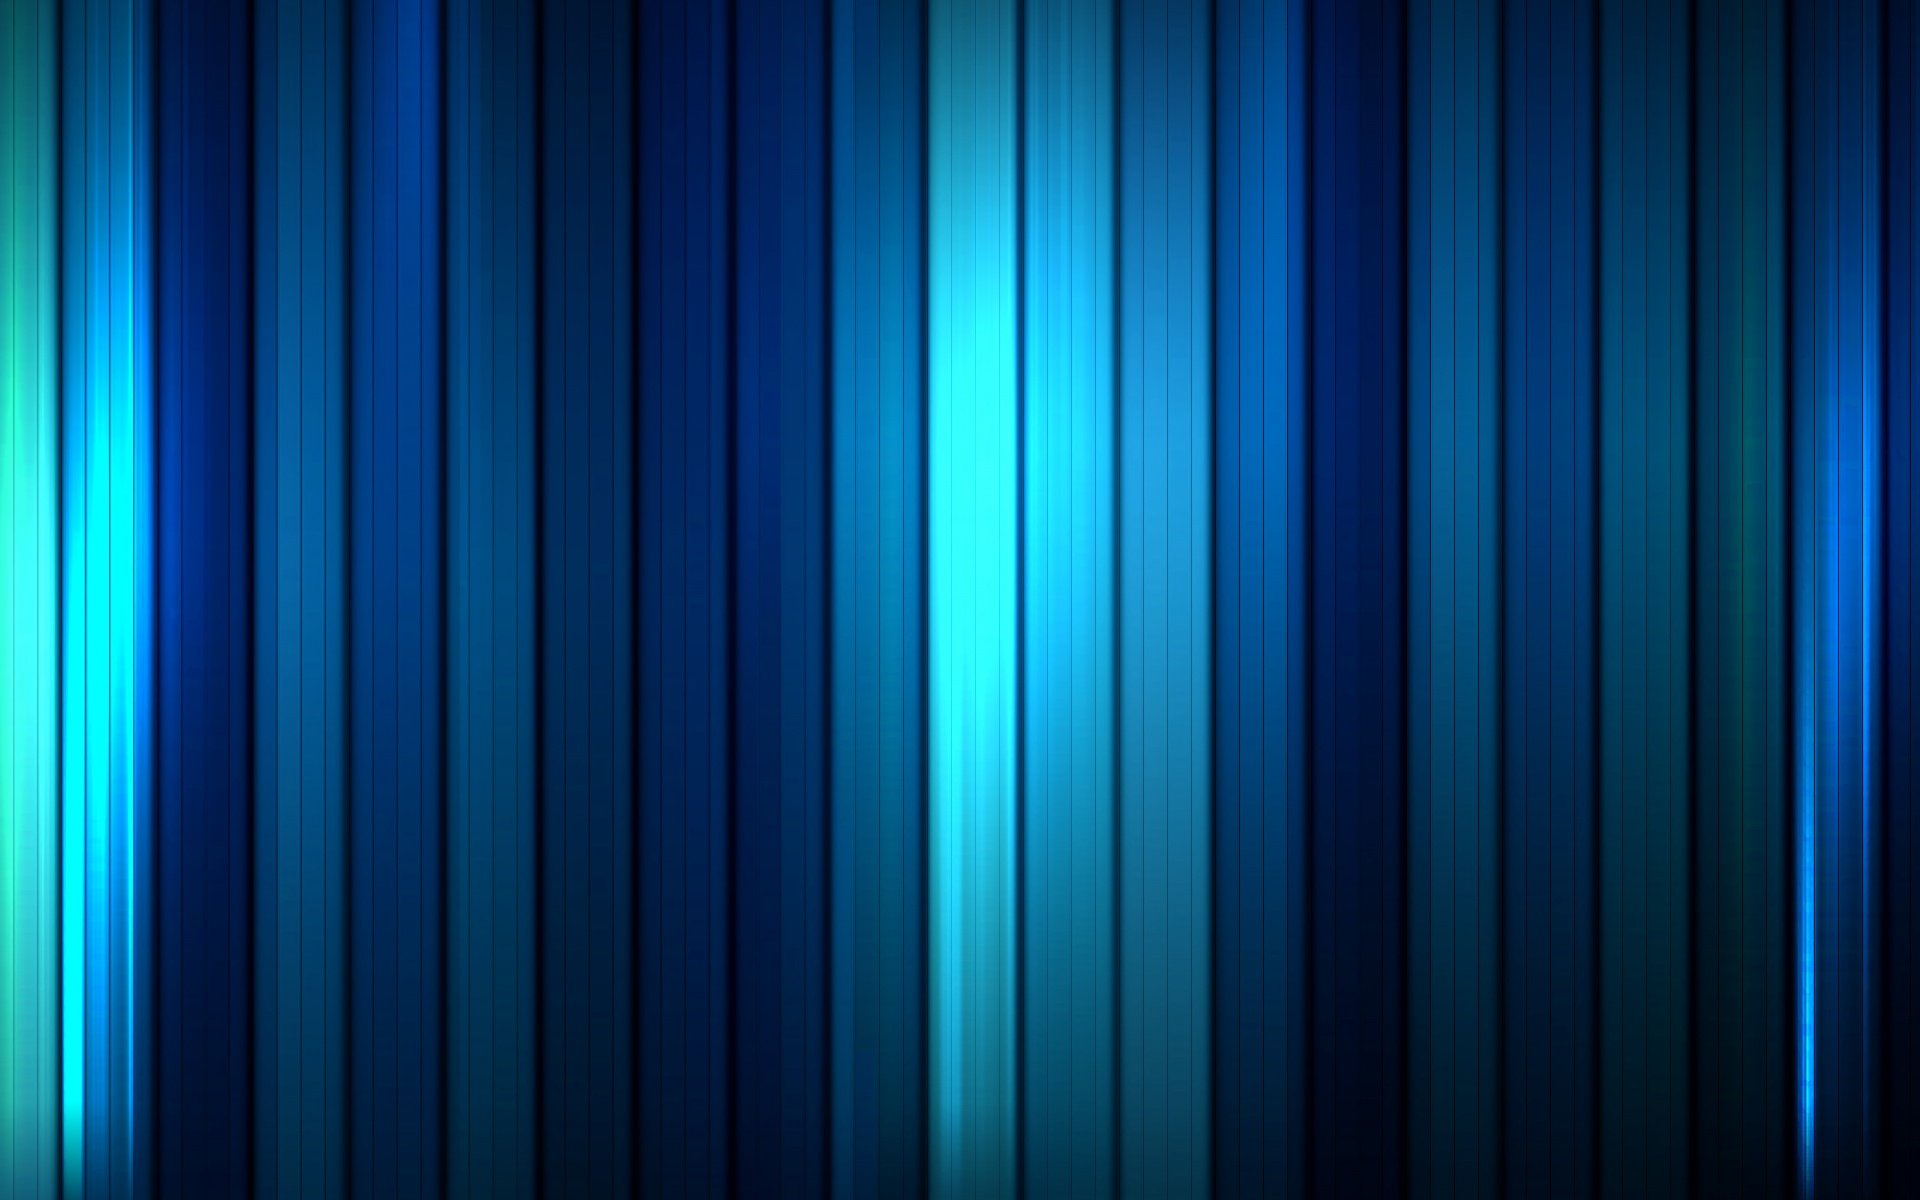 motion pictures wallpaper stripes wallpapers 1920x1200 1920x1200